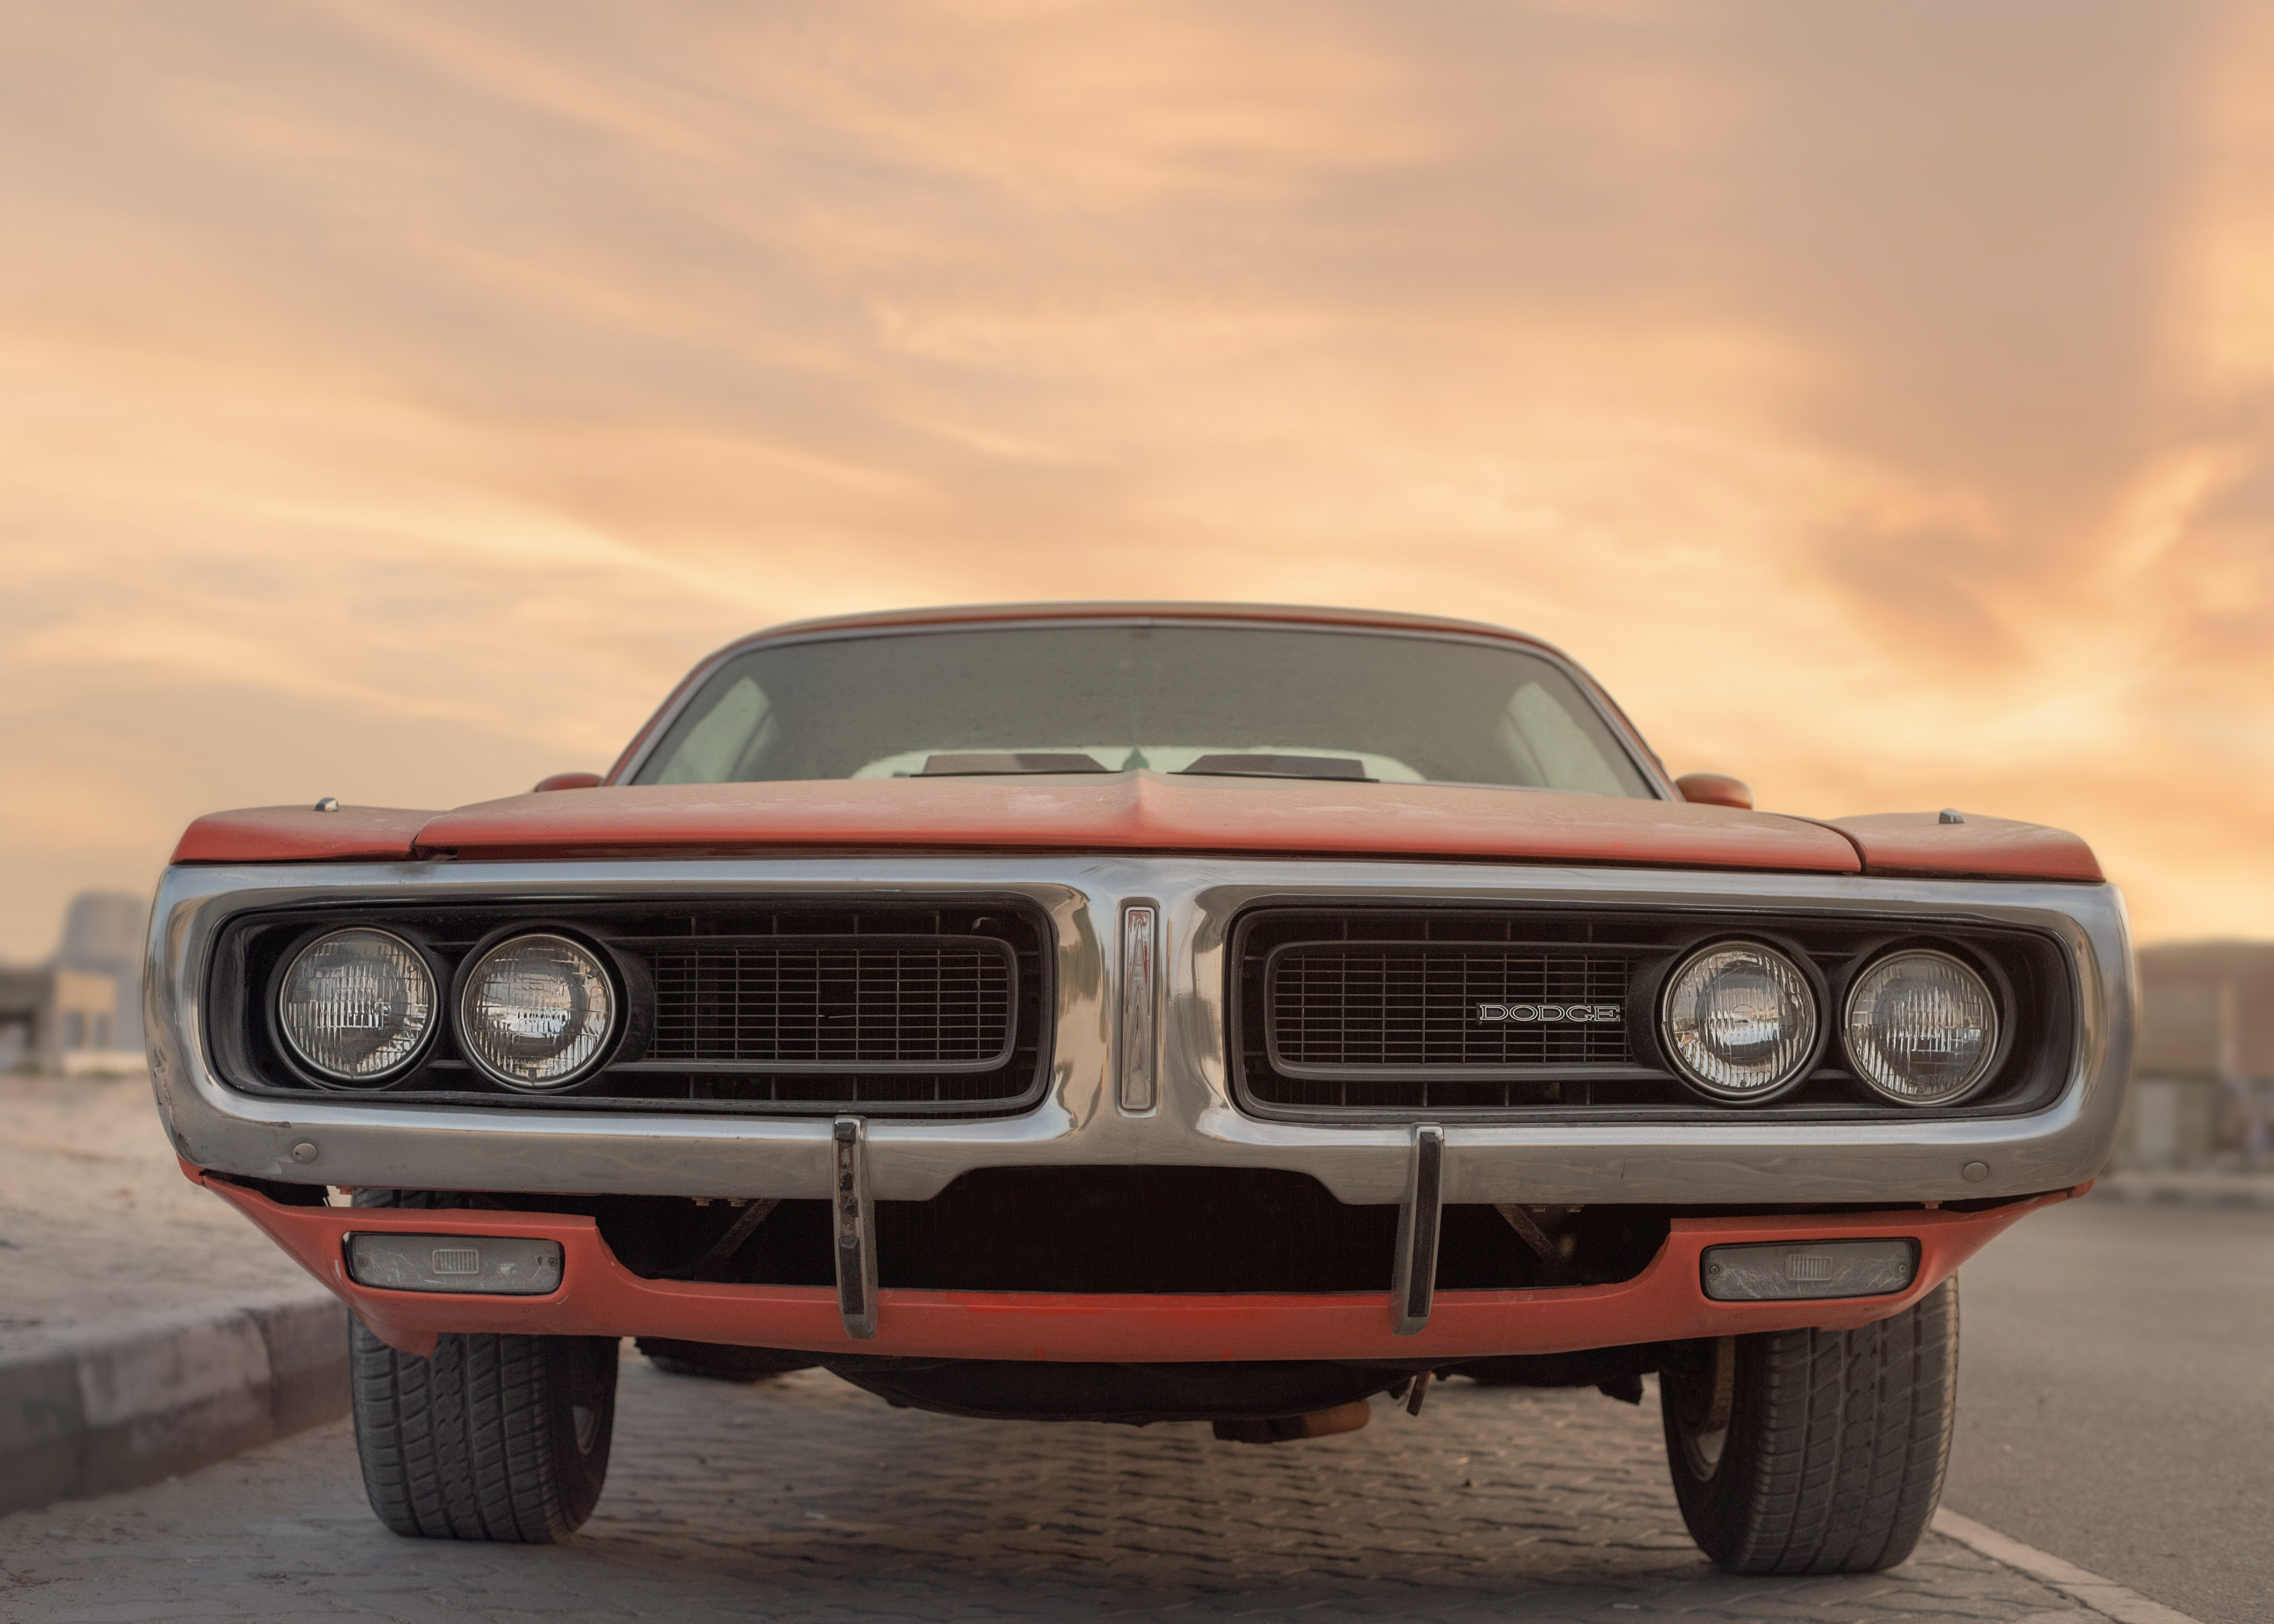 1000+ Amazing Classic Car Photos · Pexels · Free Stock Photos